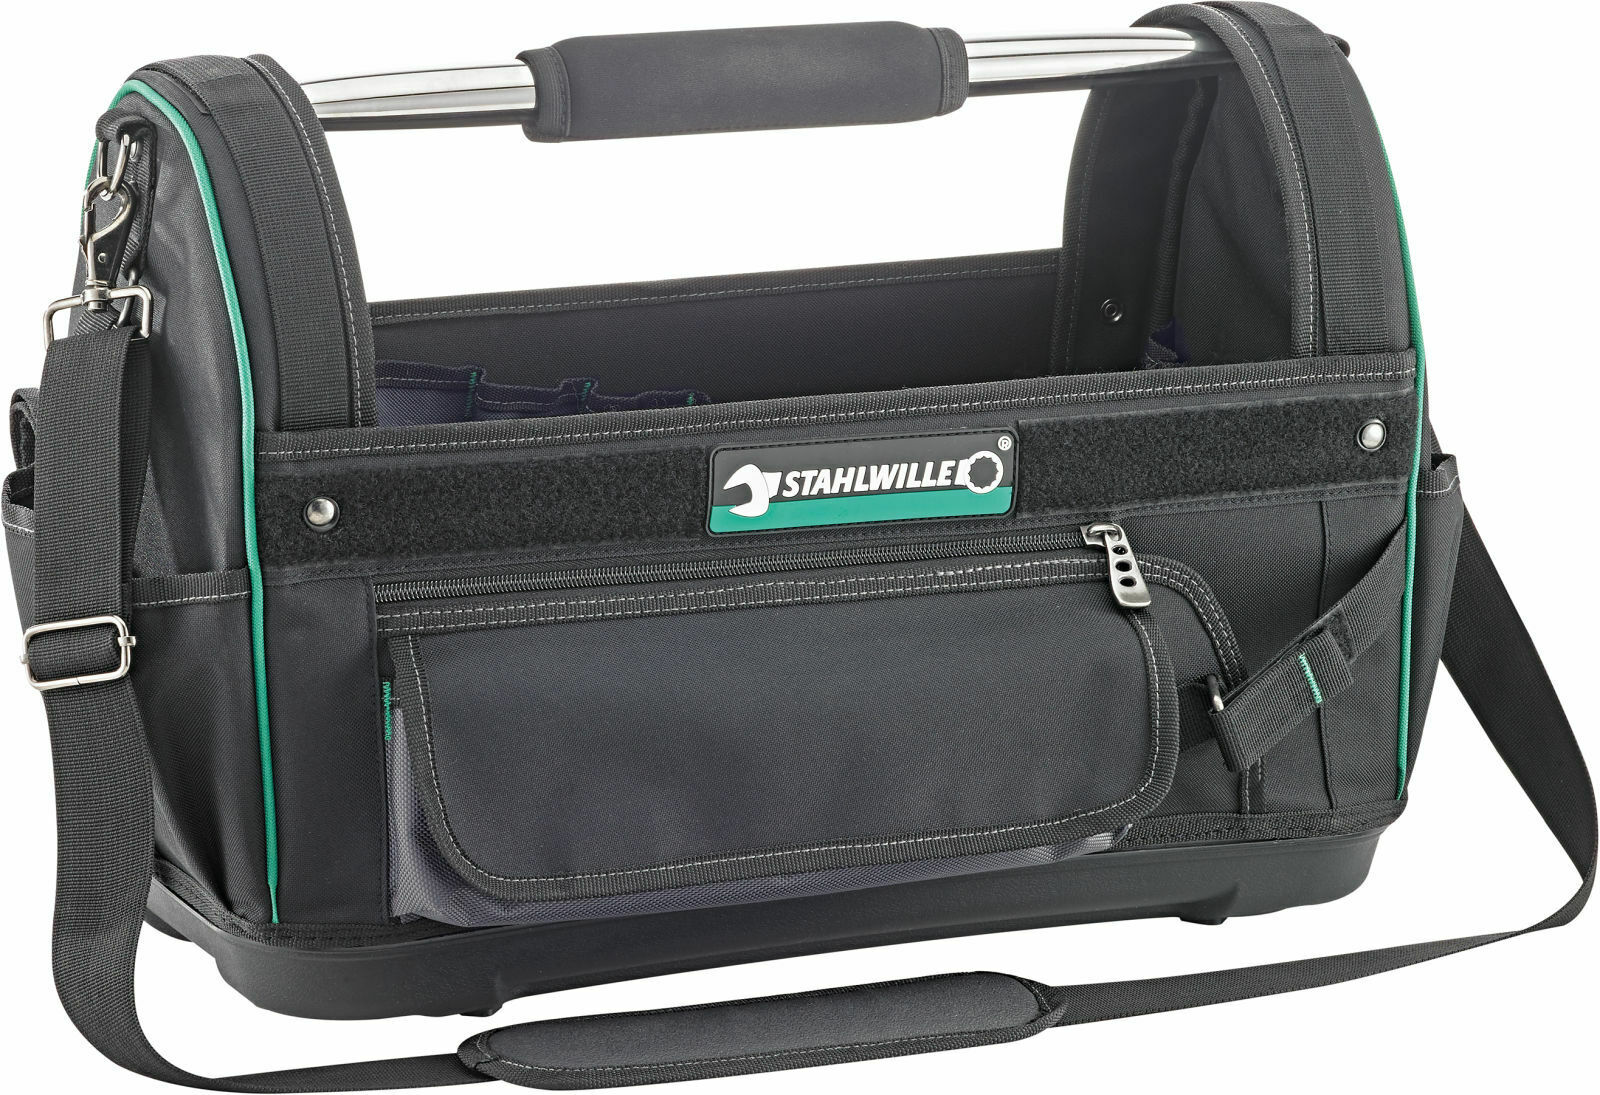 Stahlwille TEXTILE TOOL BAG 81620004 13219 TOOL BAG